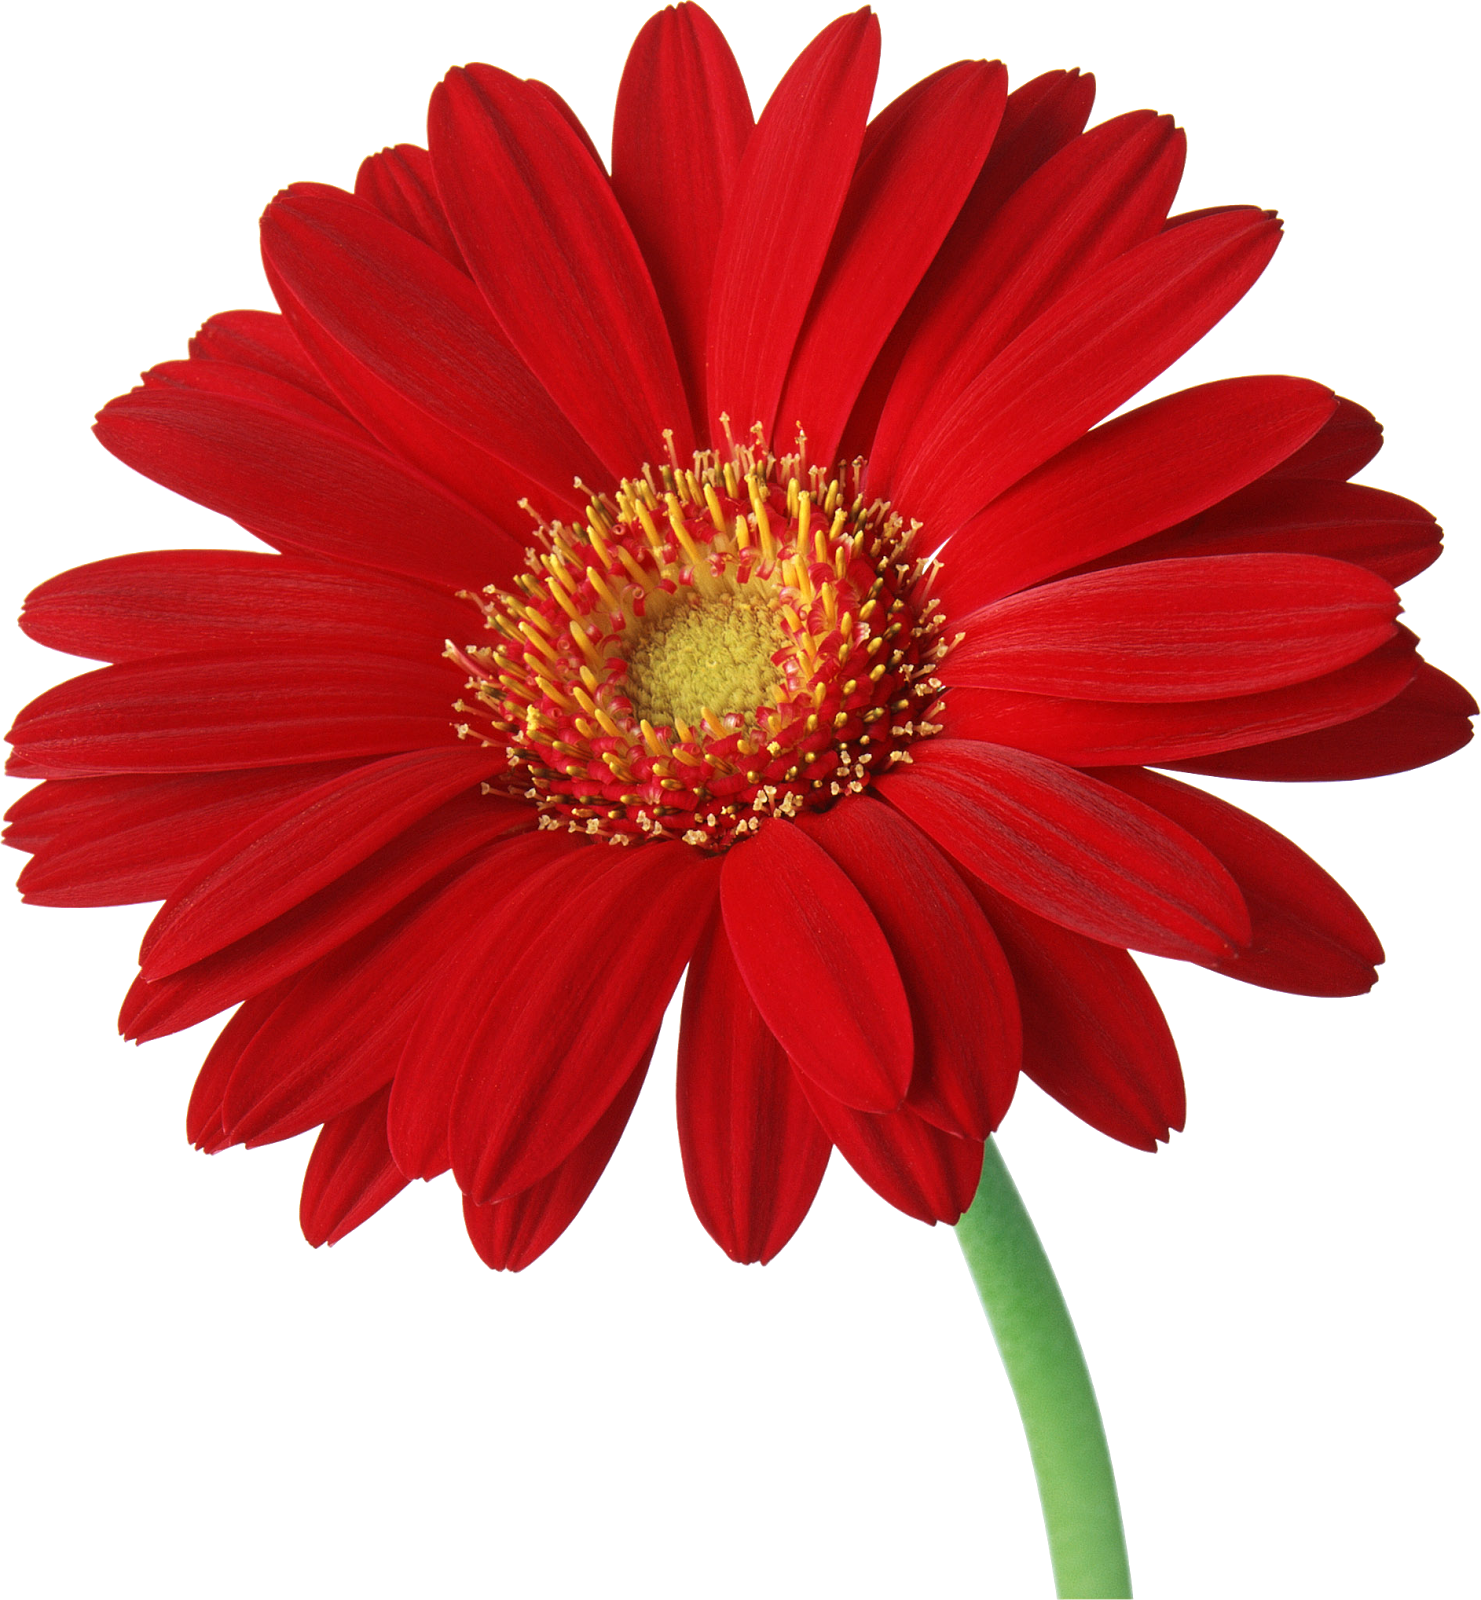 Chrysanthemum Gerbera Chrysanthemum Gerbera Sunflower Png Transparent Clipart Image And Psd File For Free Download Gerbera Chrysanthemum Sunflower Png